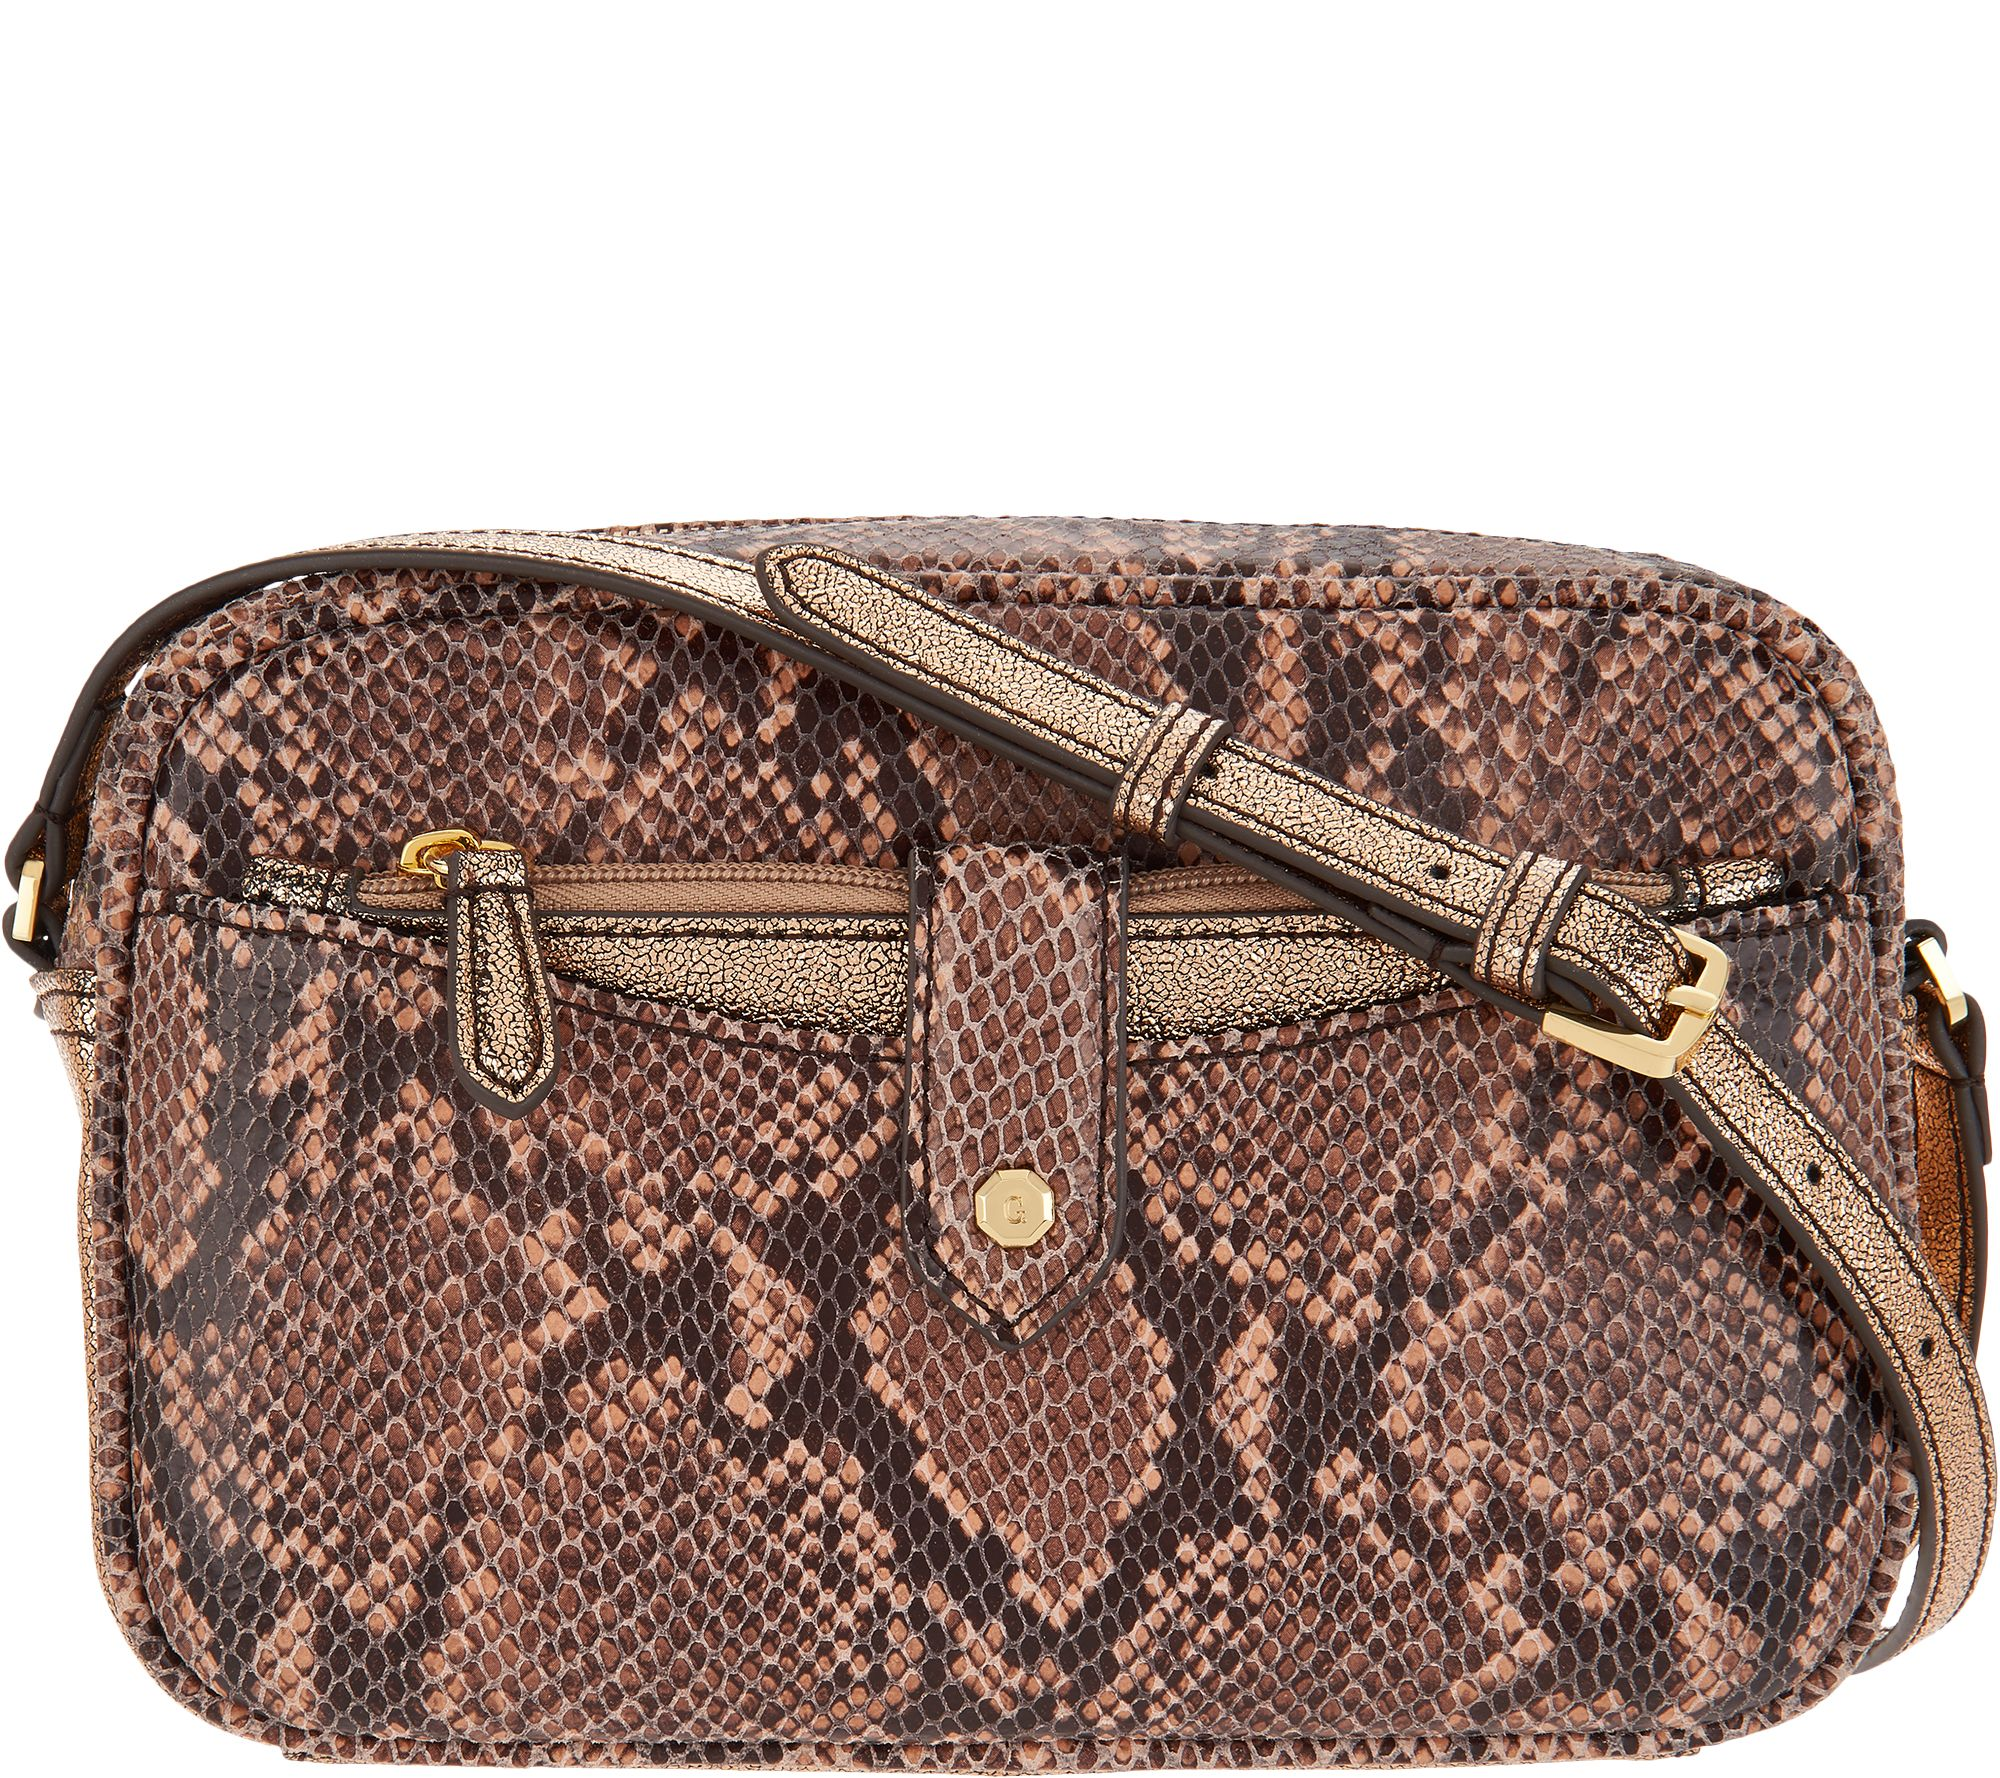 G.I.L.I. Leather Crossbody Bag with Removable Pouch - Page 1 — QVC.com 5314e3dcfd266